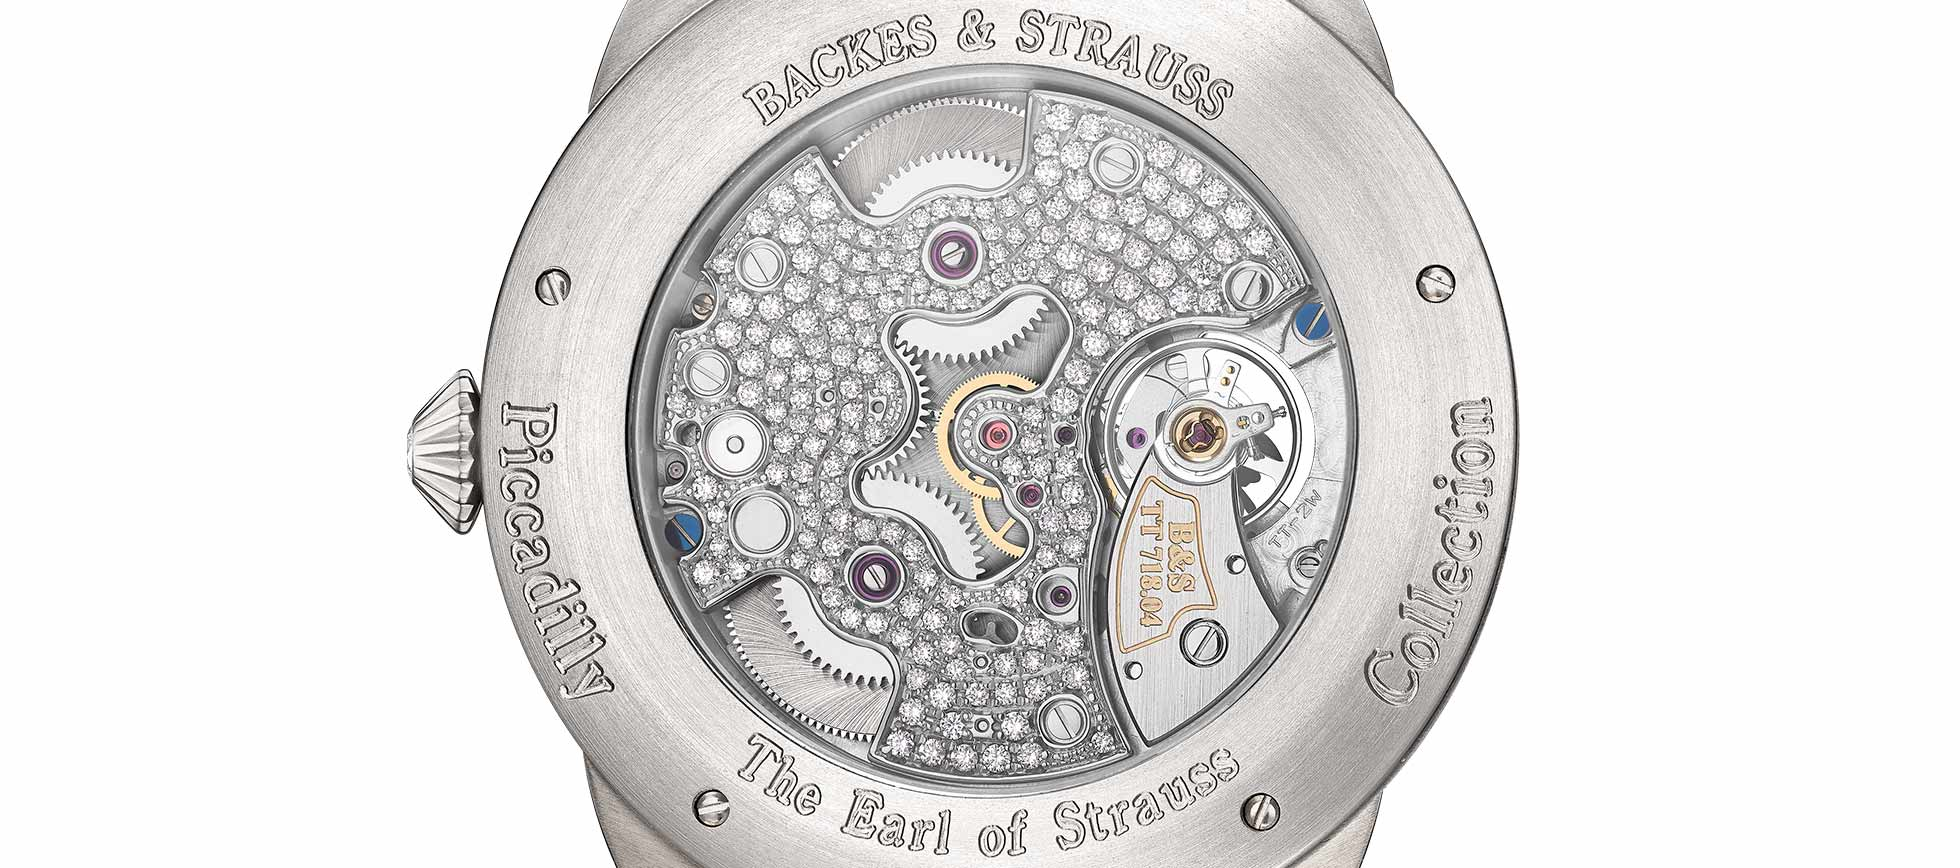 Earl of Strauss Brilliant limited edition wristwatch for him and her